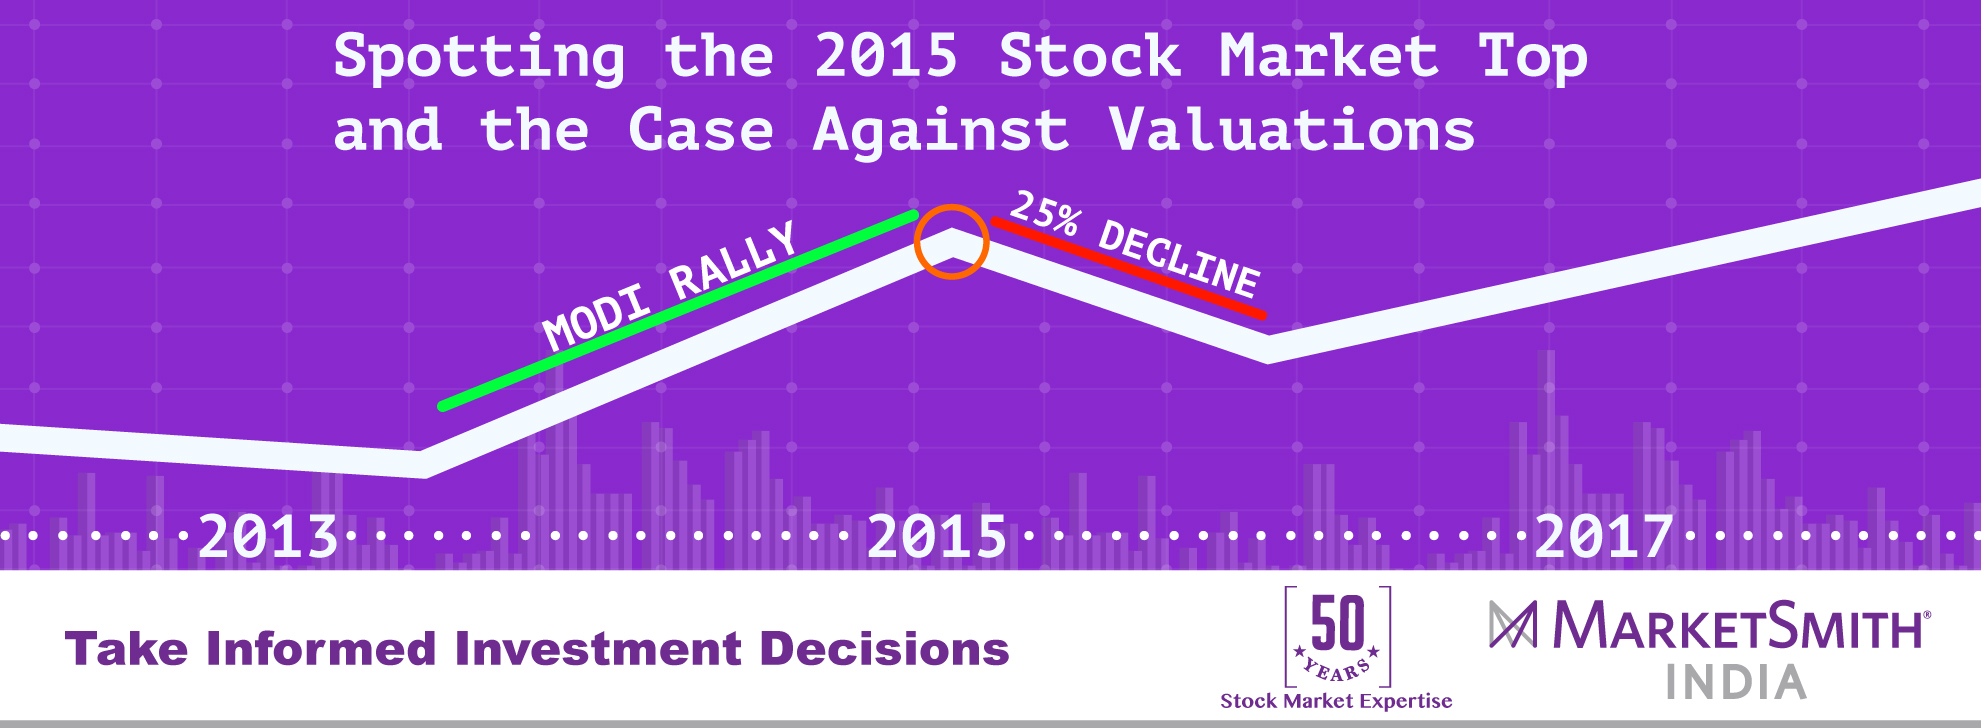 Spotting-the-2015-Stock-Market-Top- Final_MarketSmithIndia